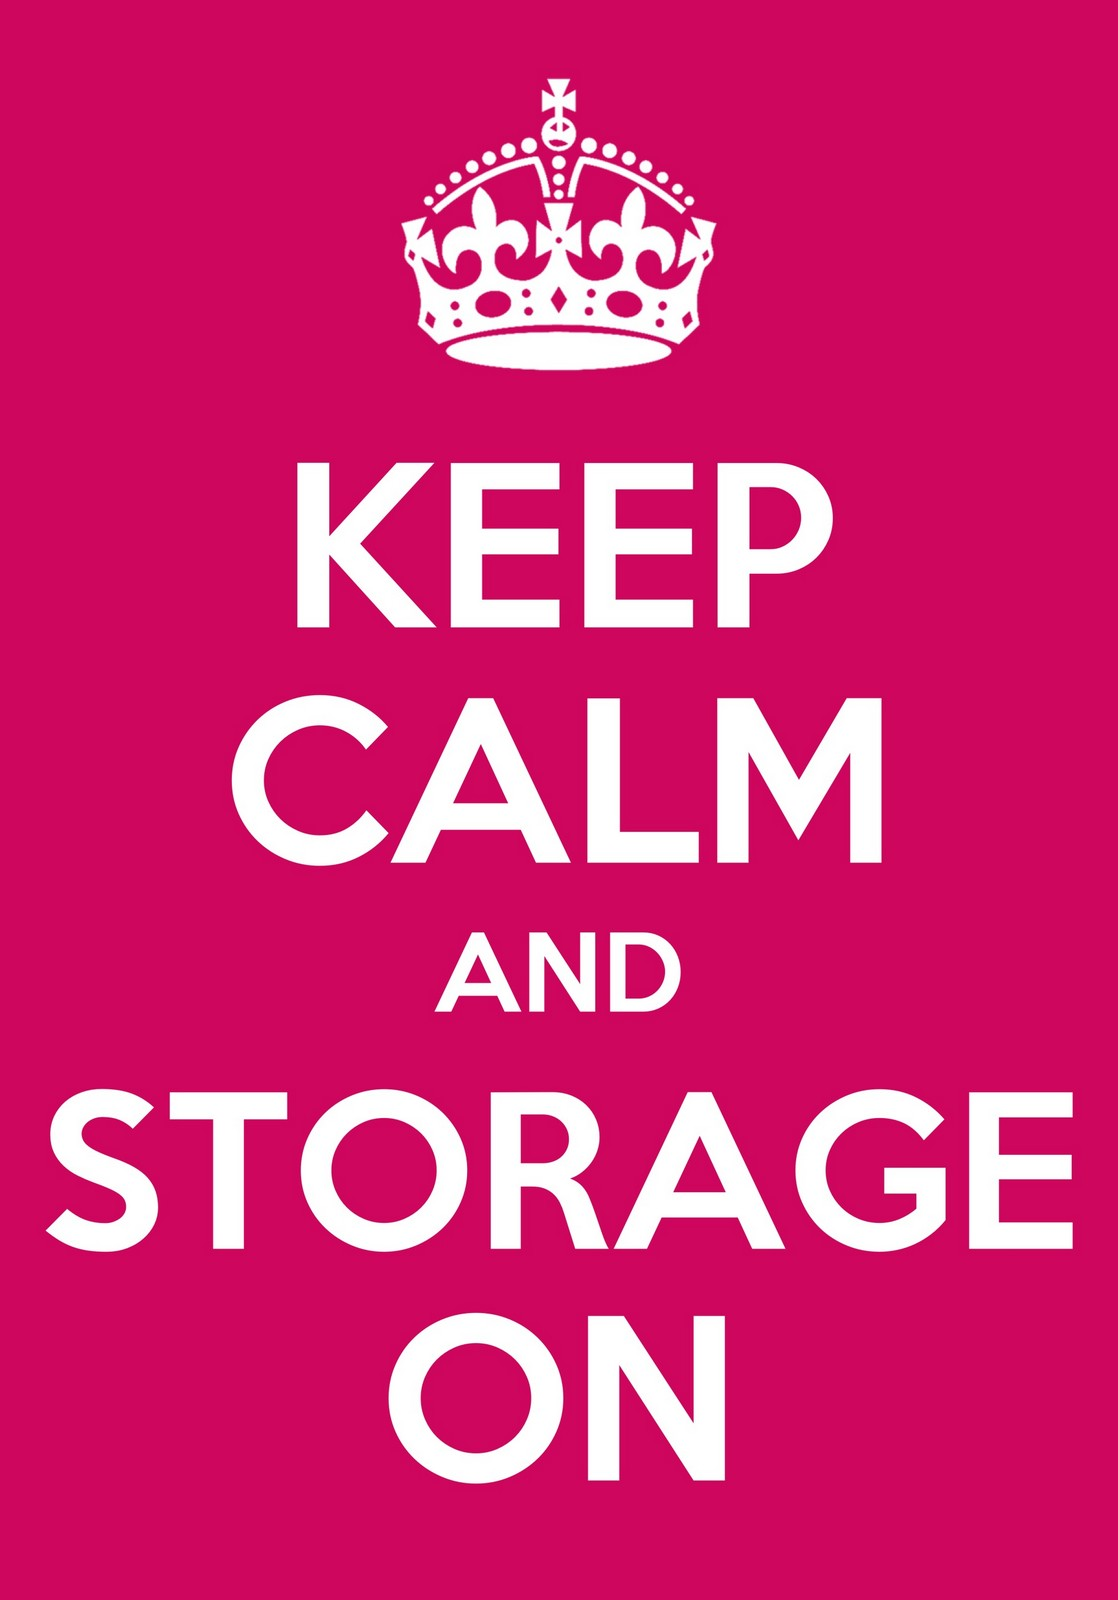 keep calm and storage on